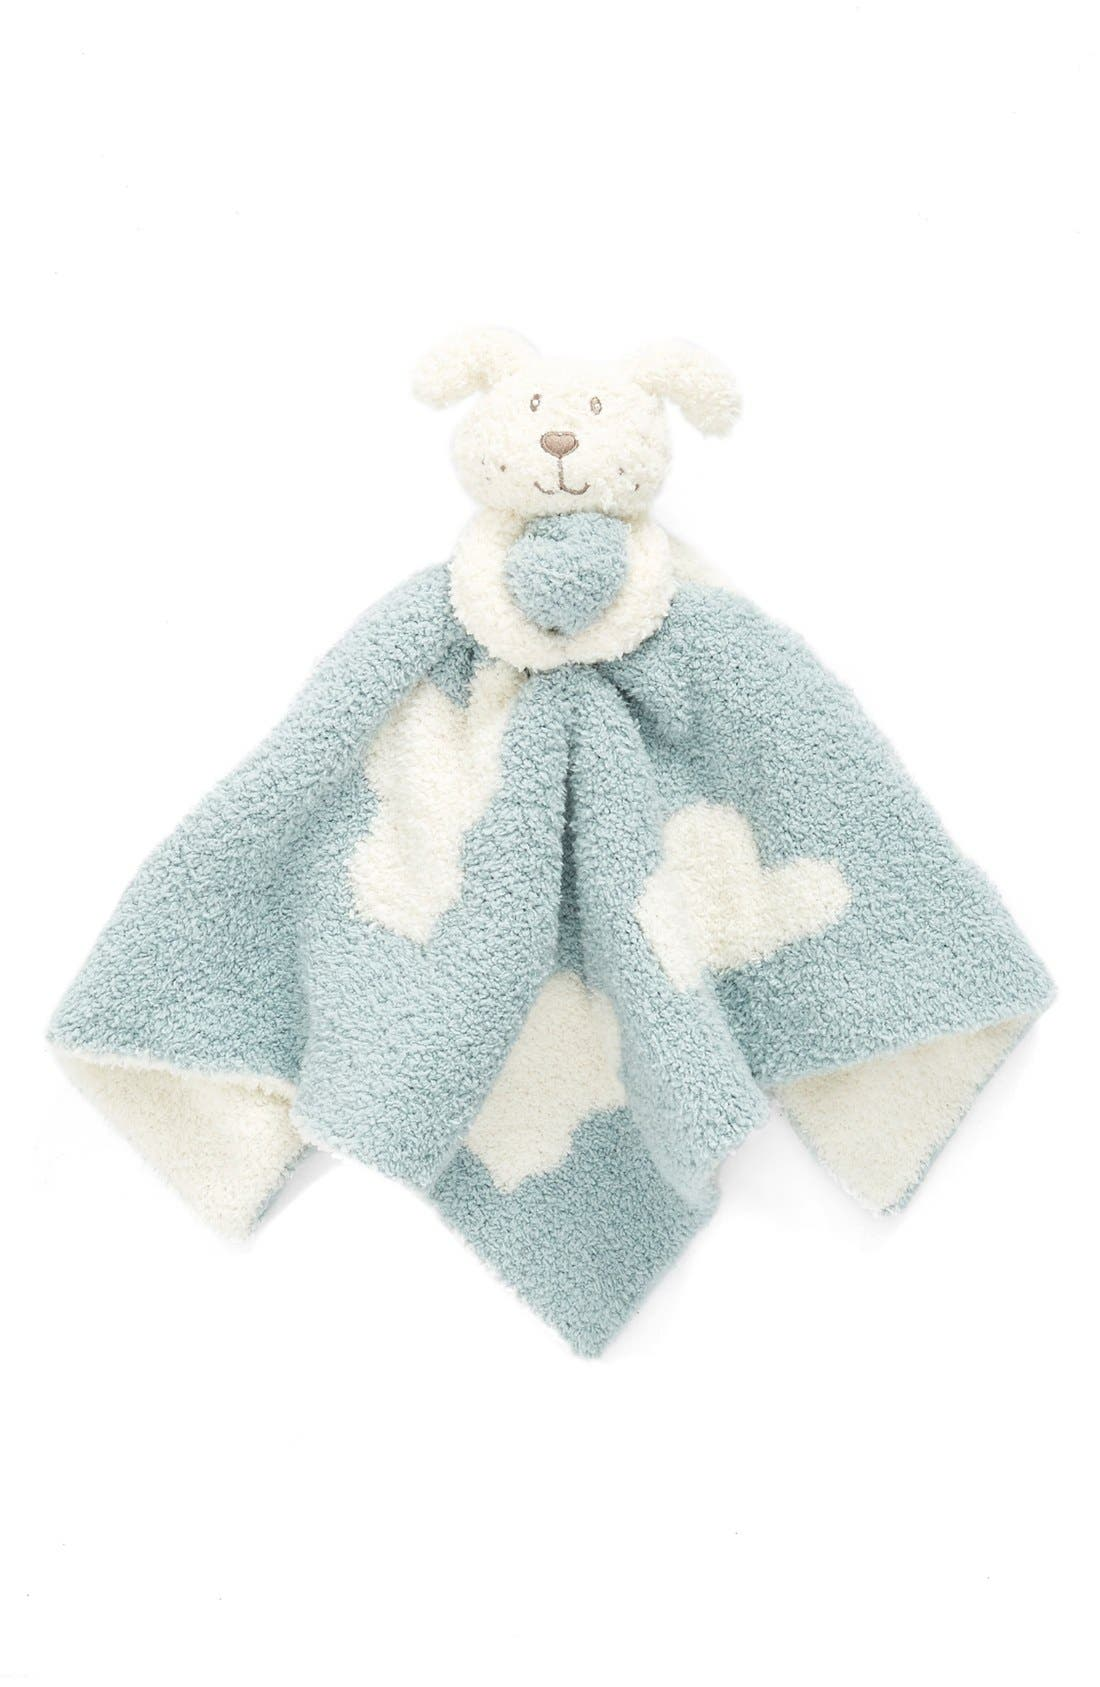 'Cloud Buddie' Blanket,                             Main thumbnail 1, color,                             Blue Wave/ Cream